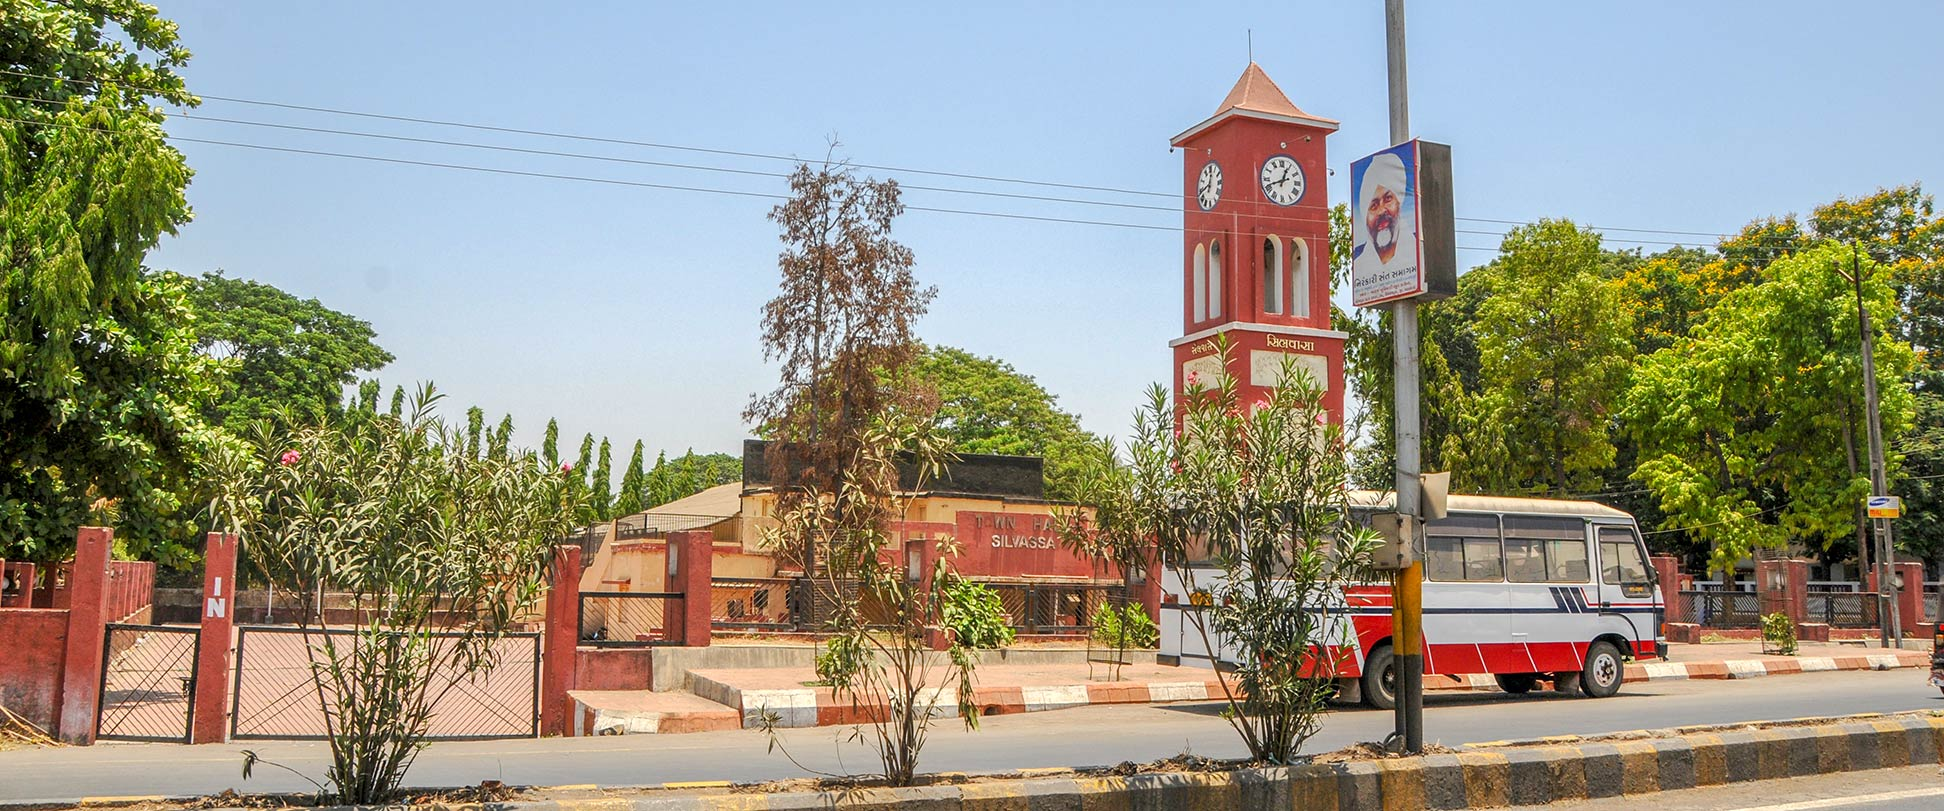 Town hall and clock tower of Silvassa